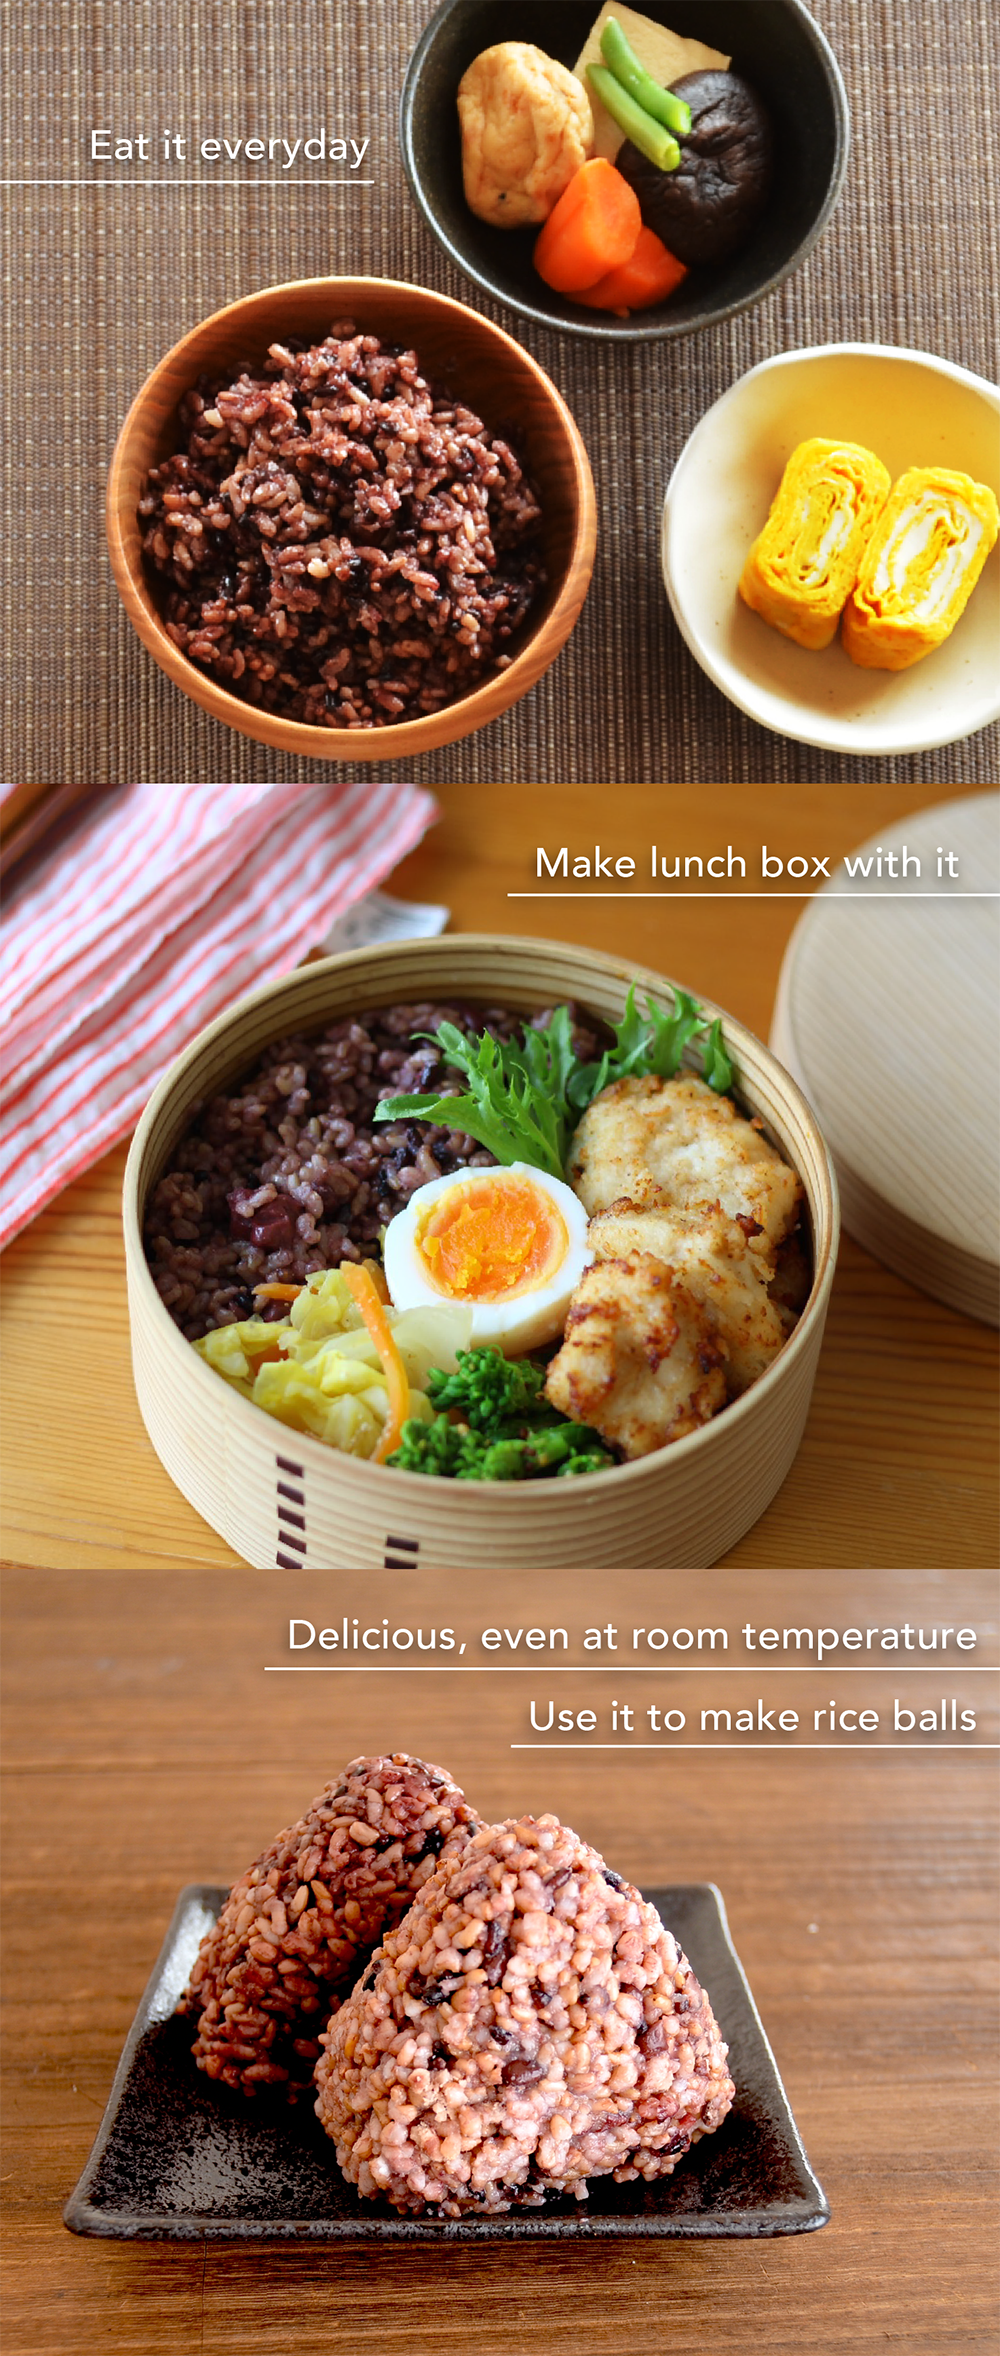 How to use enzyme brown rice